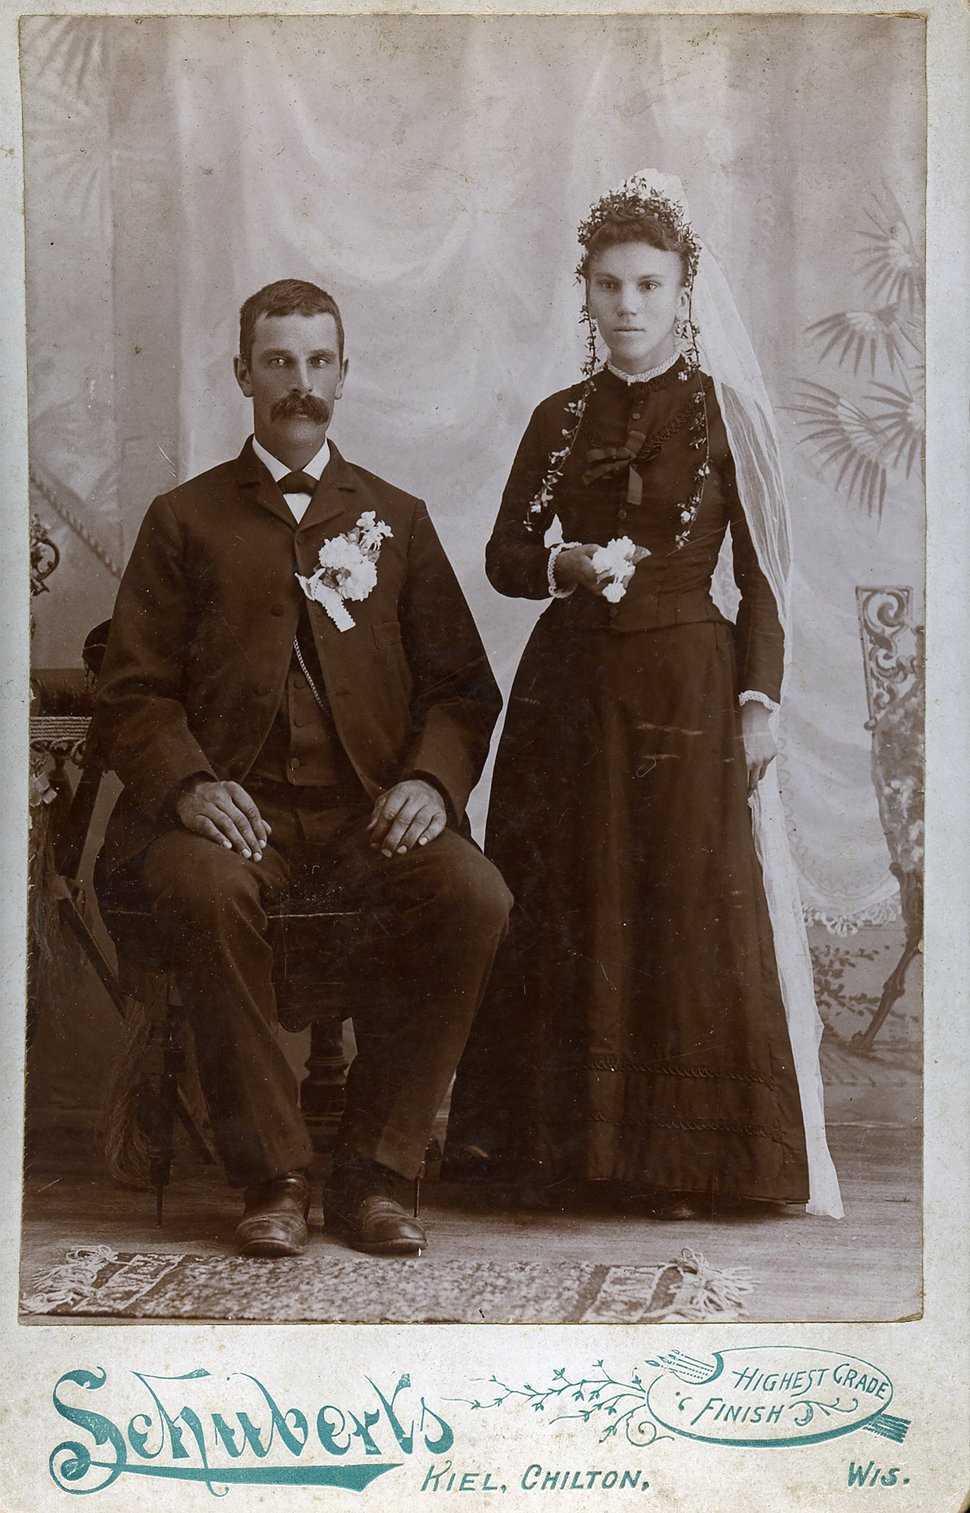 (https://petapixel.com/2017/07/03/wedding-photos-looked-like-late-1800s/ - Author: Will Nicholls Date: July 07, 2013))